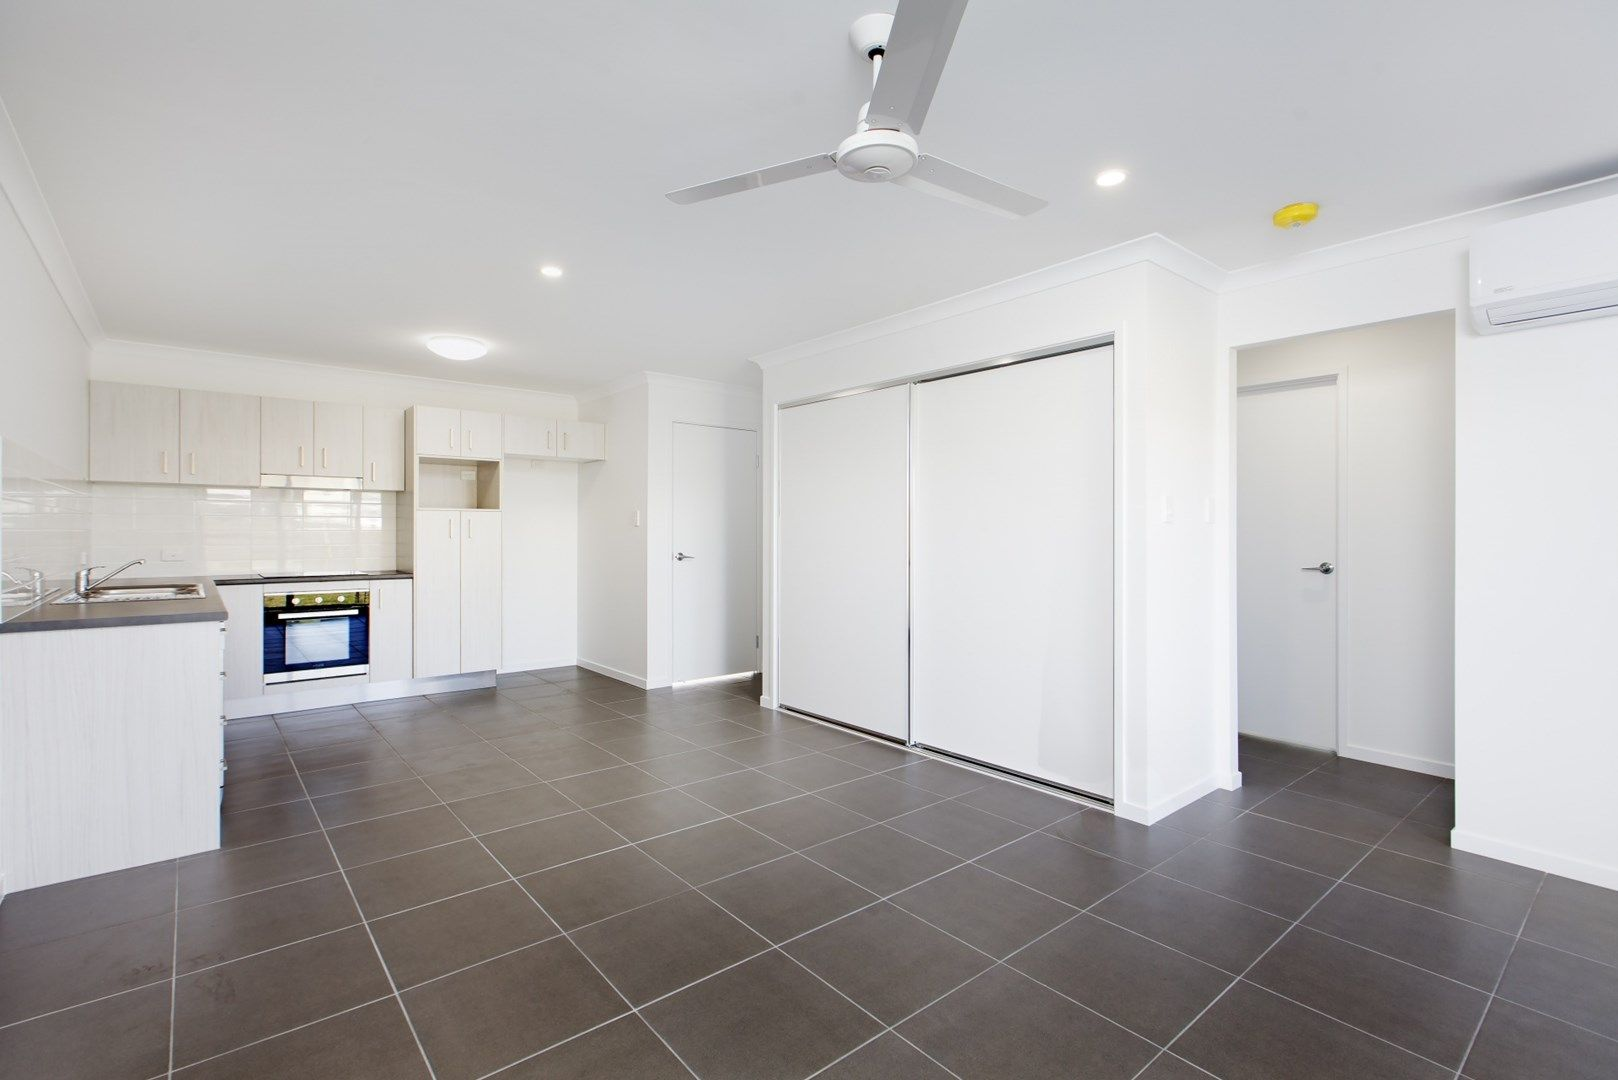 2/7 Speargrass Court, Beerwah QLD 4519, Image 2